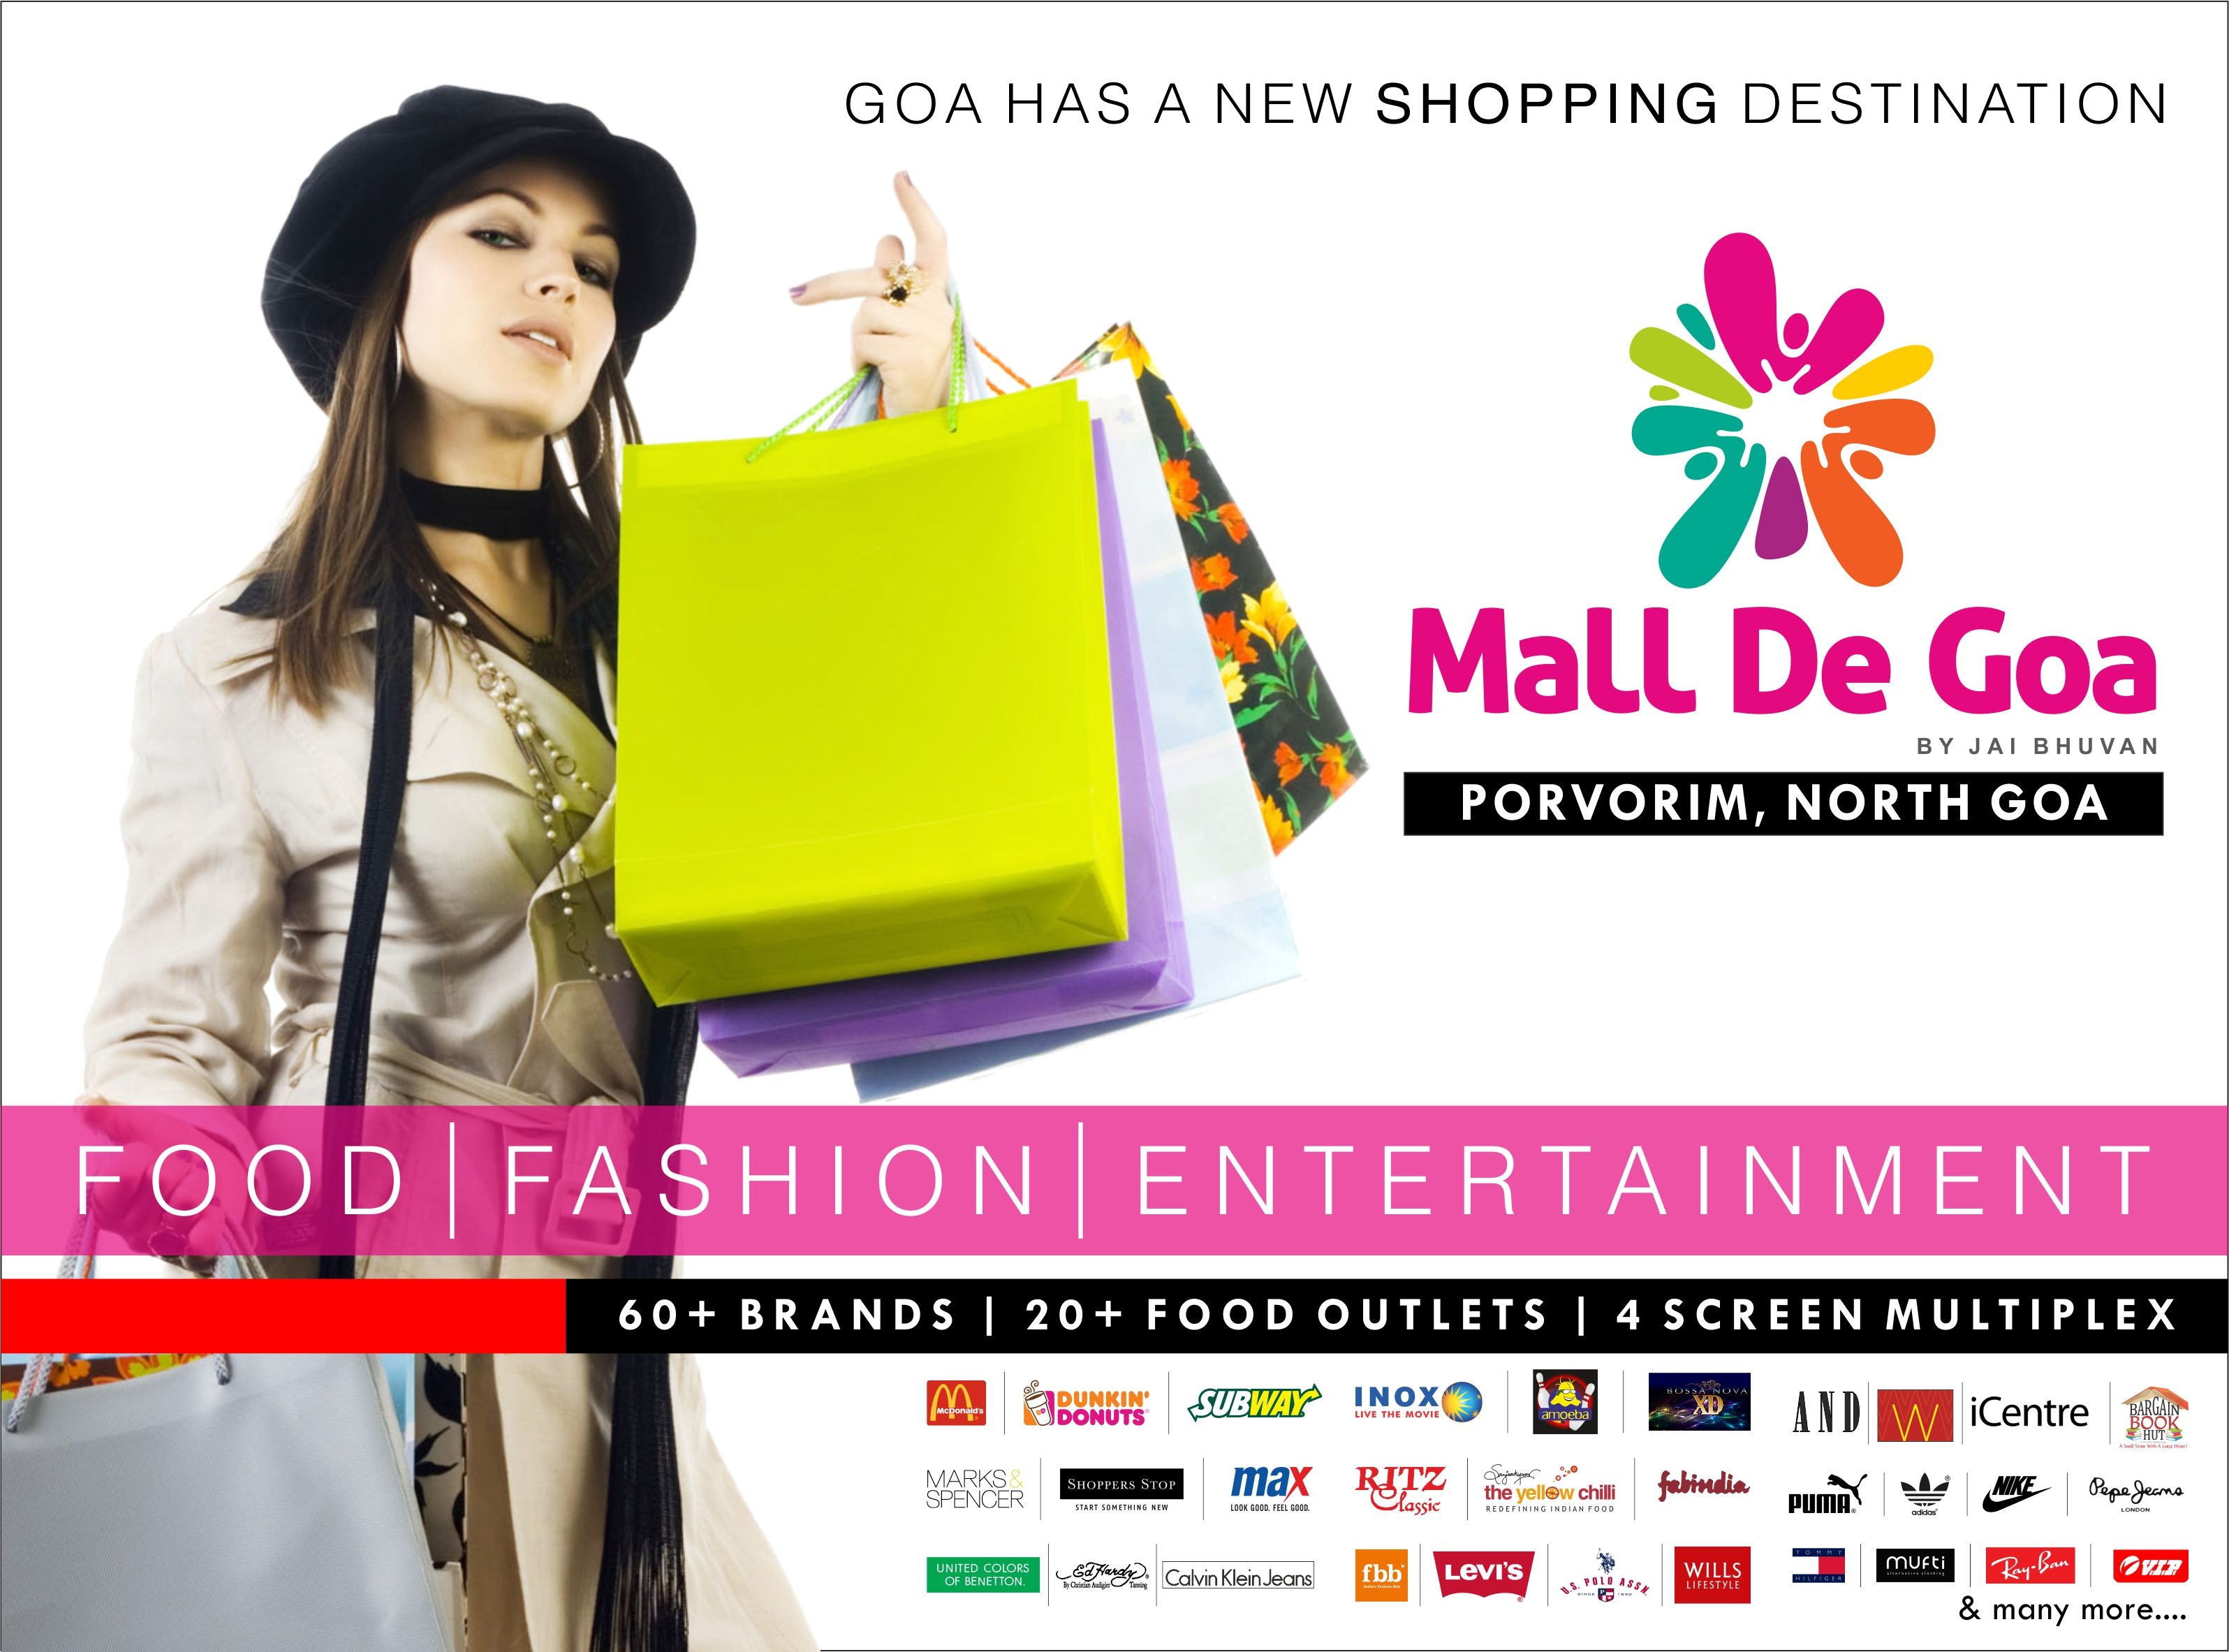 Mall De Goa Magazine Full Page